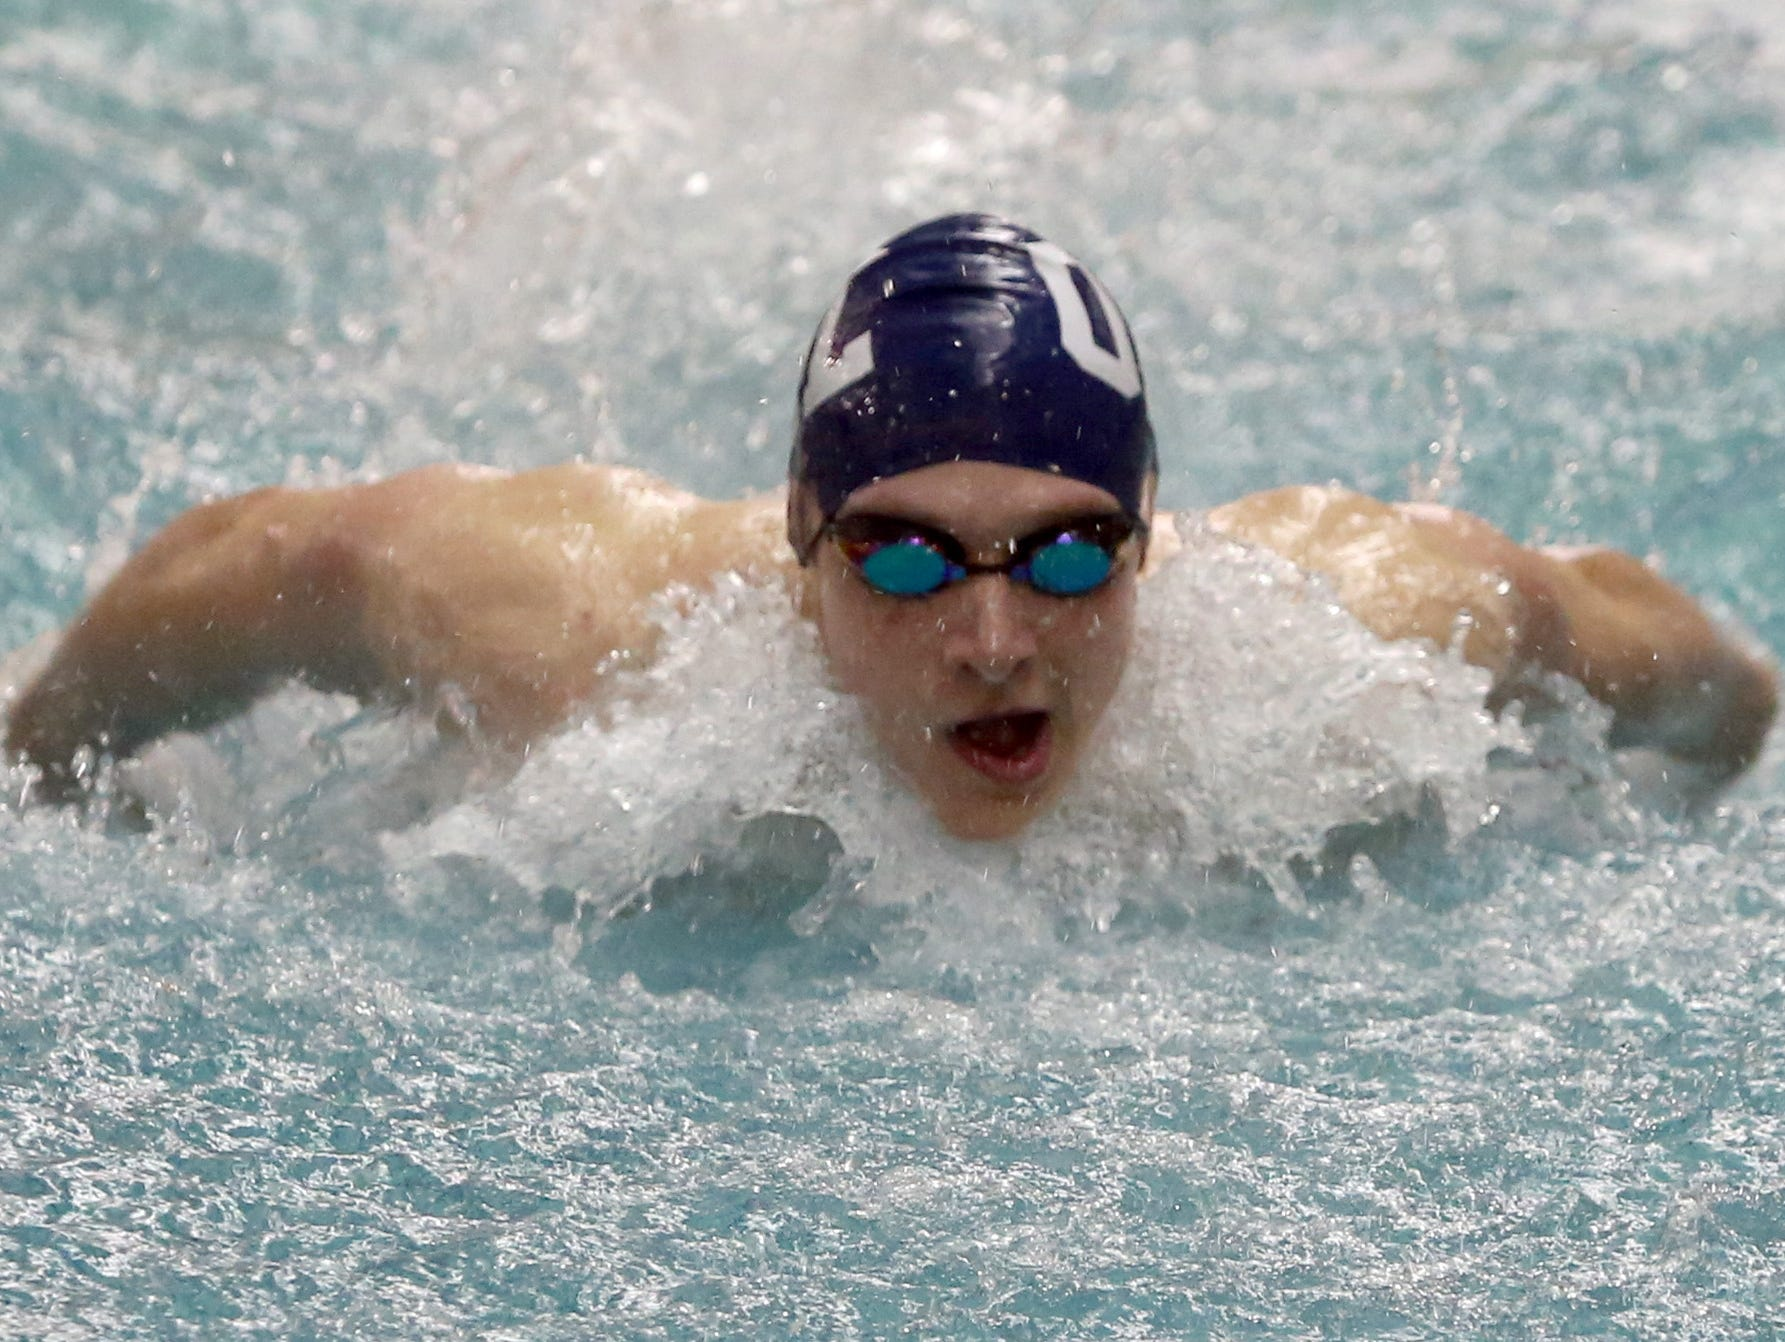 Our Lady of Lourdes High School's Christian Thomas competes in the 200-yard individual medley event at the Section 1 swimming championships at Felix Festa Middle School in West Nyack on Feb. 8. Thomas finished in second place.